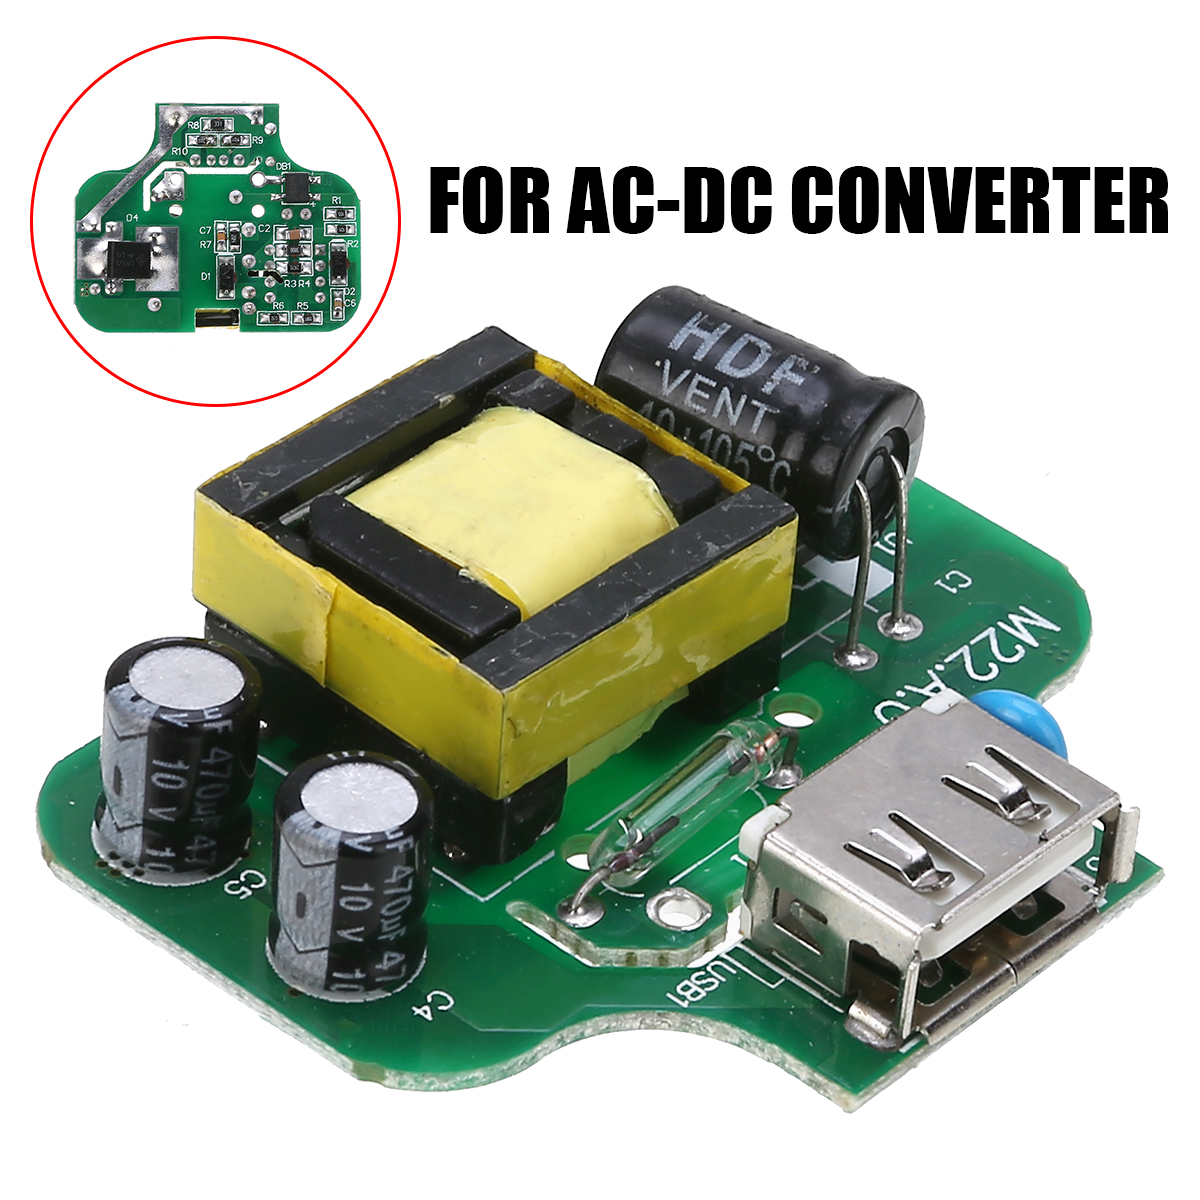 Durable AC-DC Power <font><b>Adapter</b></font> Converter AC 110V <font><b>220V</b></font> 230V <font><b>to</b></font> DC <font><b>5V</b></font> 2.1A USB Output DIY Phone Charger Power Supply Module Board image